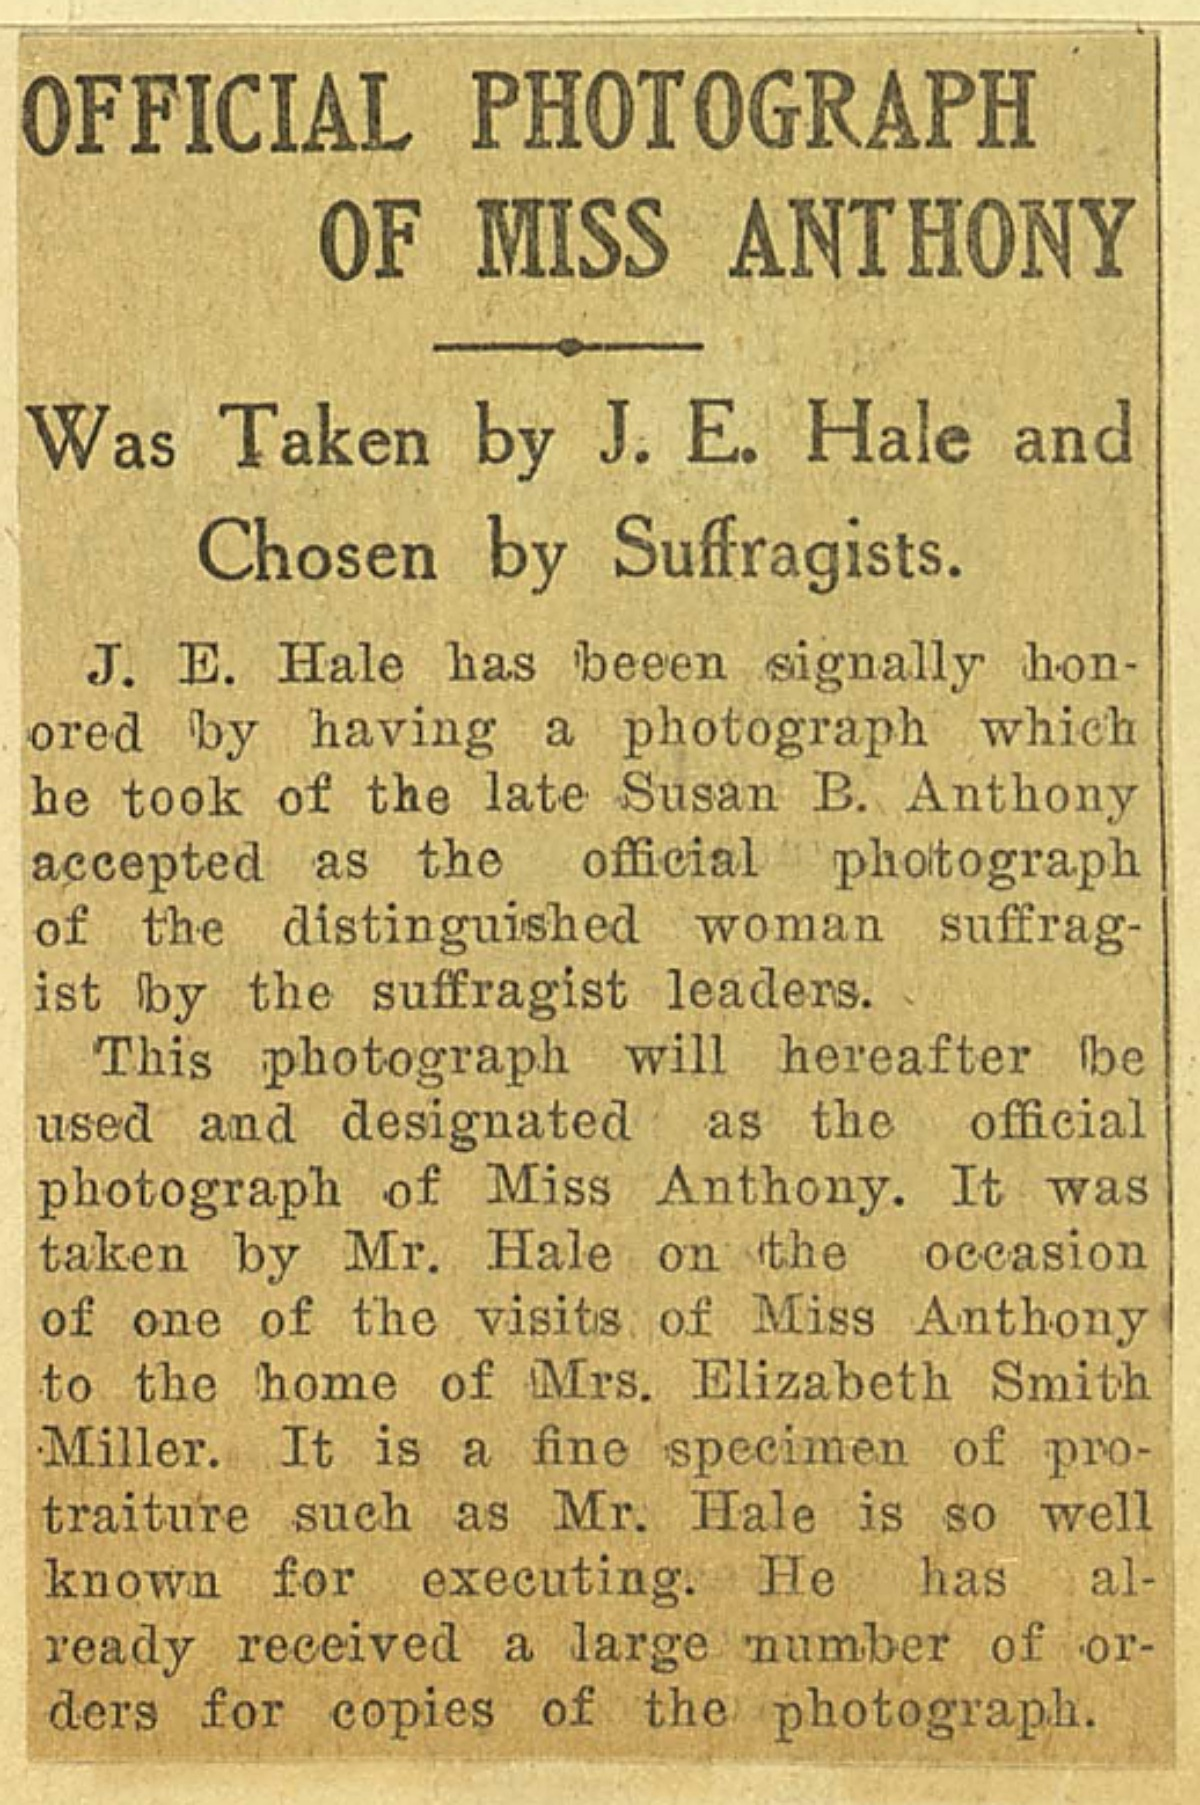 newspaper clipping about Susan B. Anthony photo by J.E. Hale